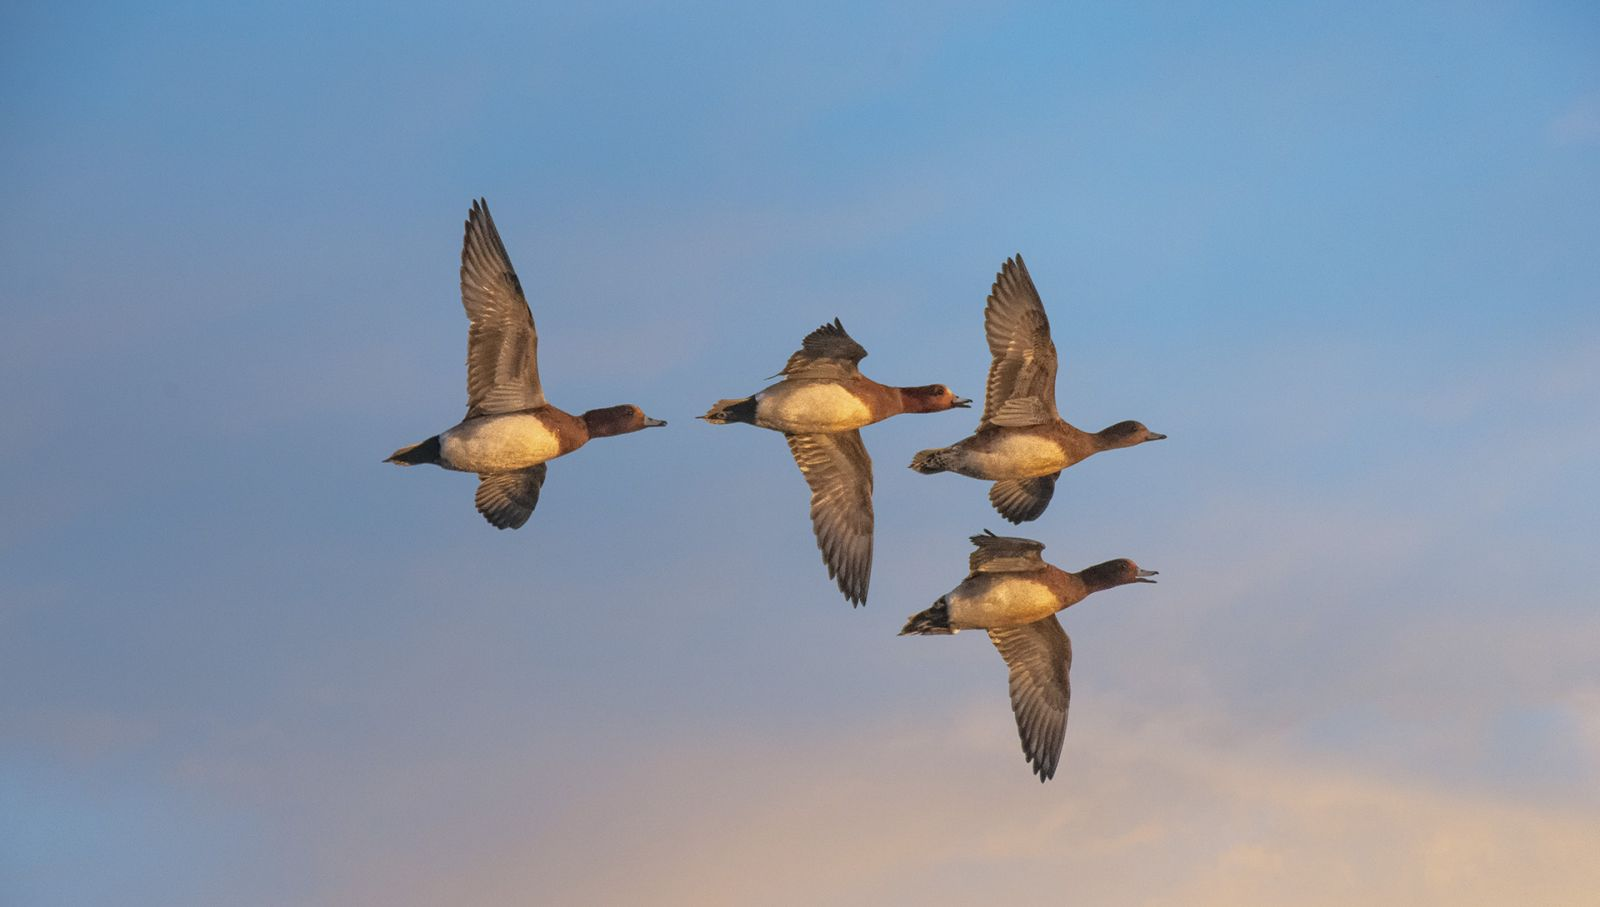 wigeon by Yorkshire wildlife photographer John Gardner